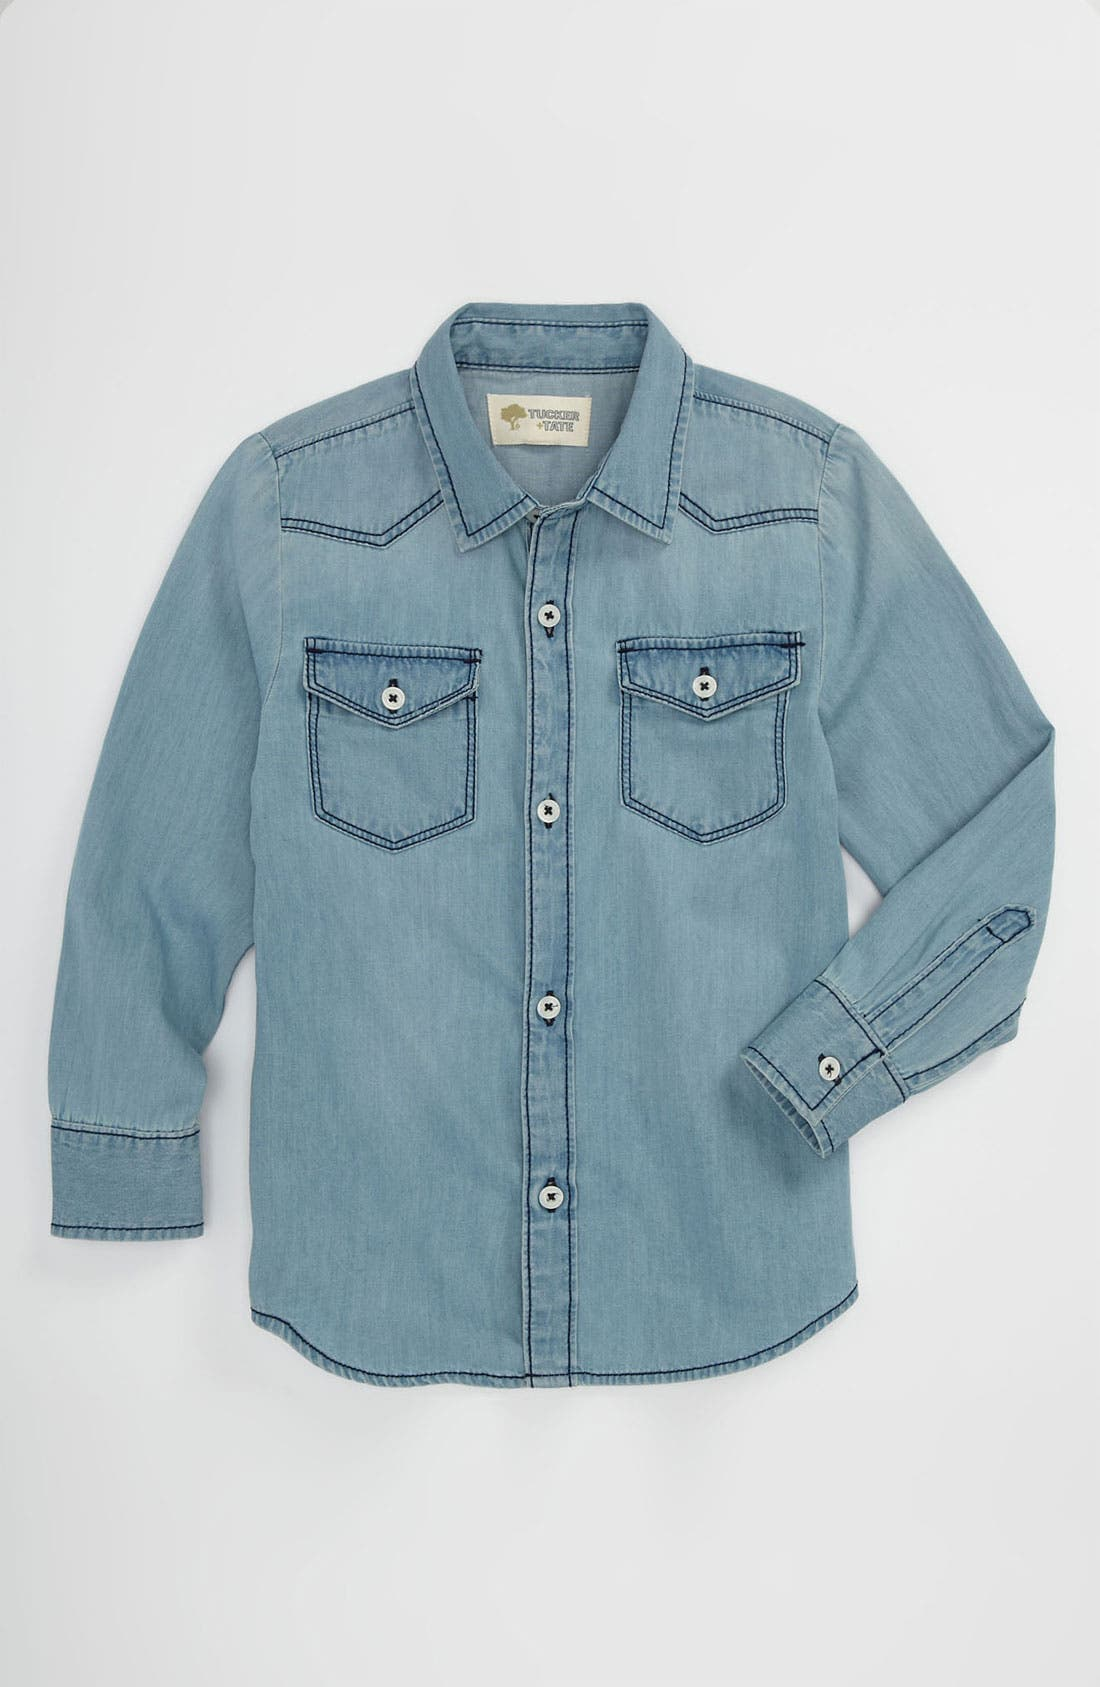 Main Image - Tucker + Tate 'Benson' Denim Shirt (Little Boys)